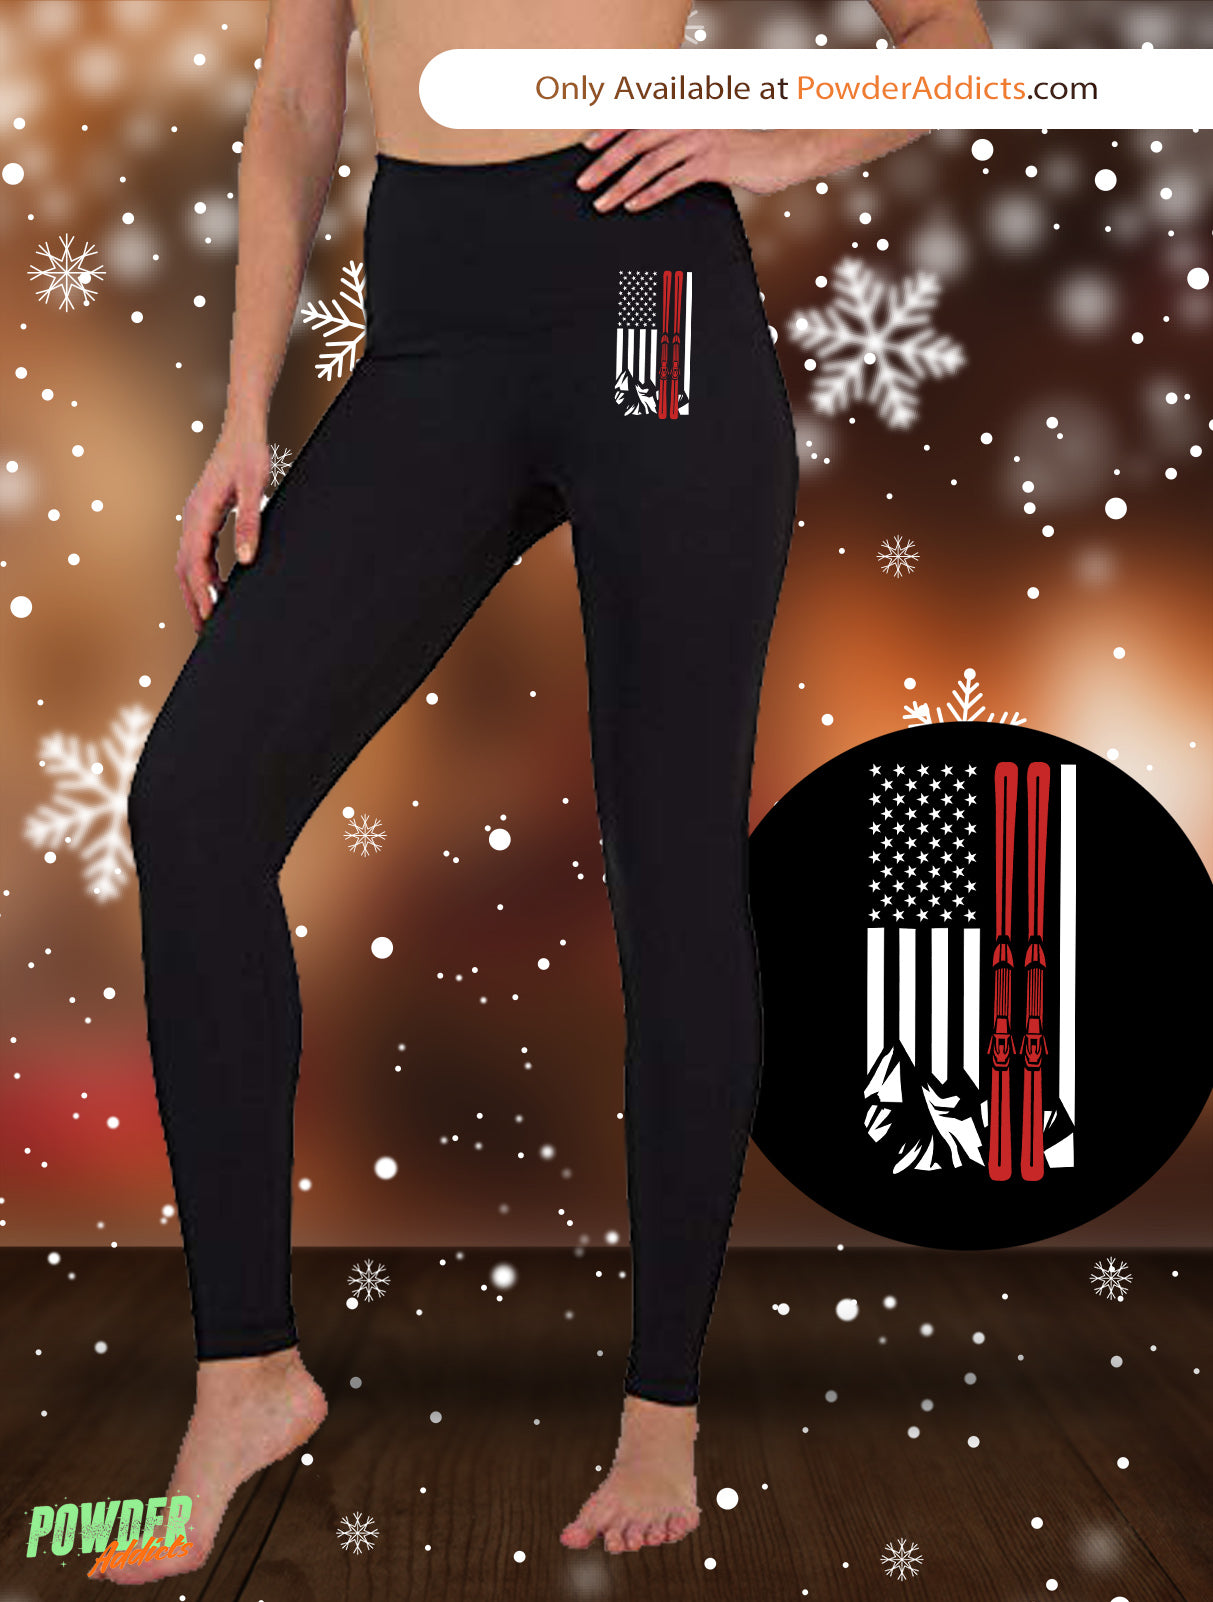 USA Ski Flag Thin Red Line Women's Embroidered Leggings - Powderaddicts